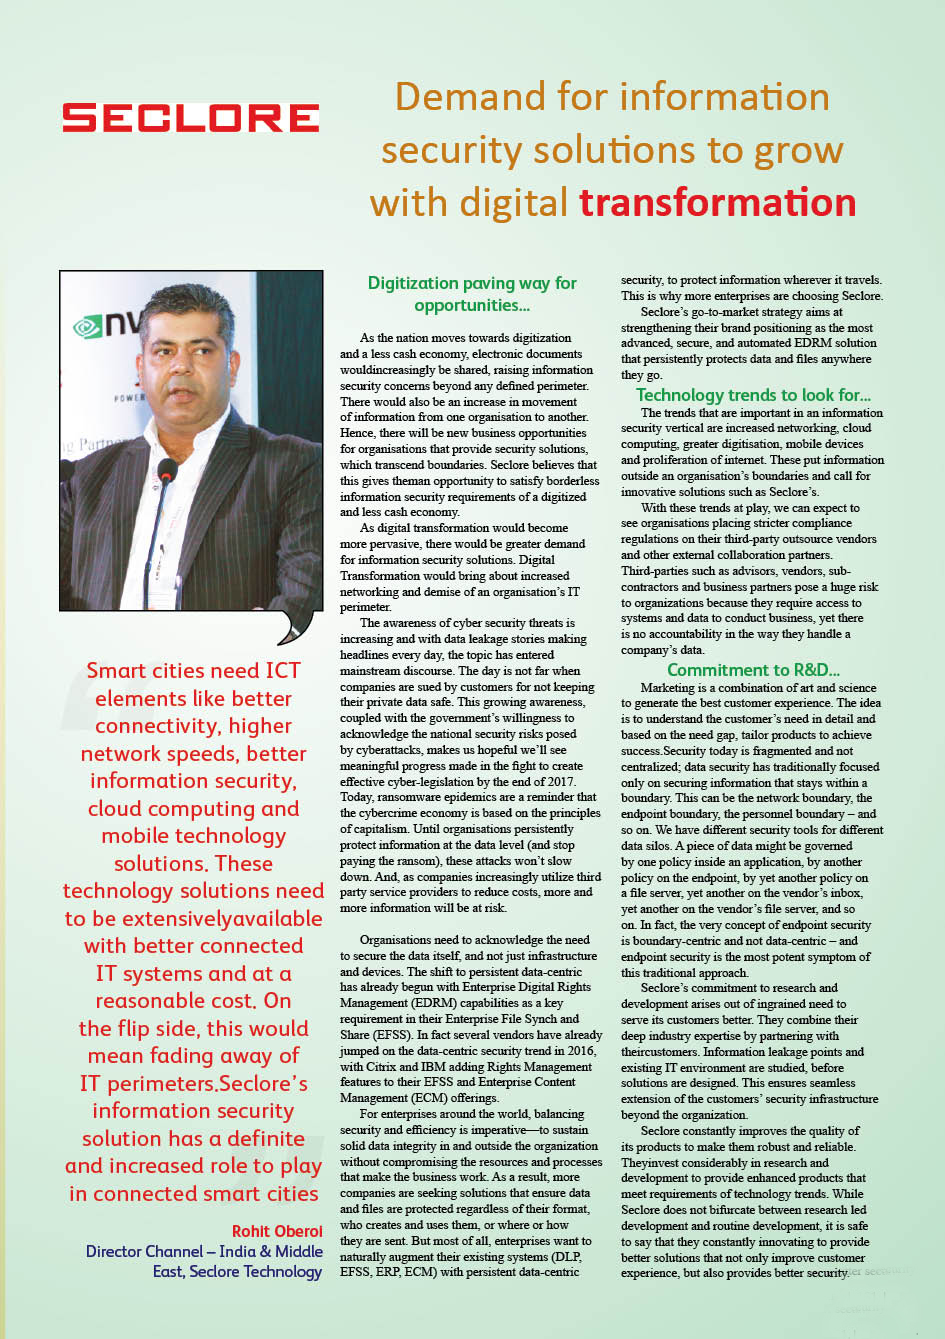 Seclore Technology : Demand for information security solutions to grow with digital transformation